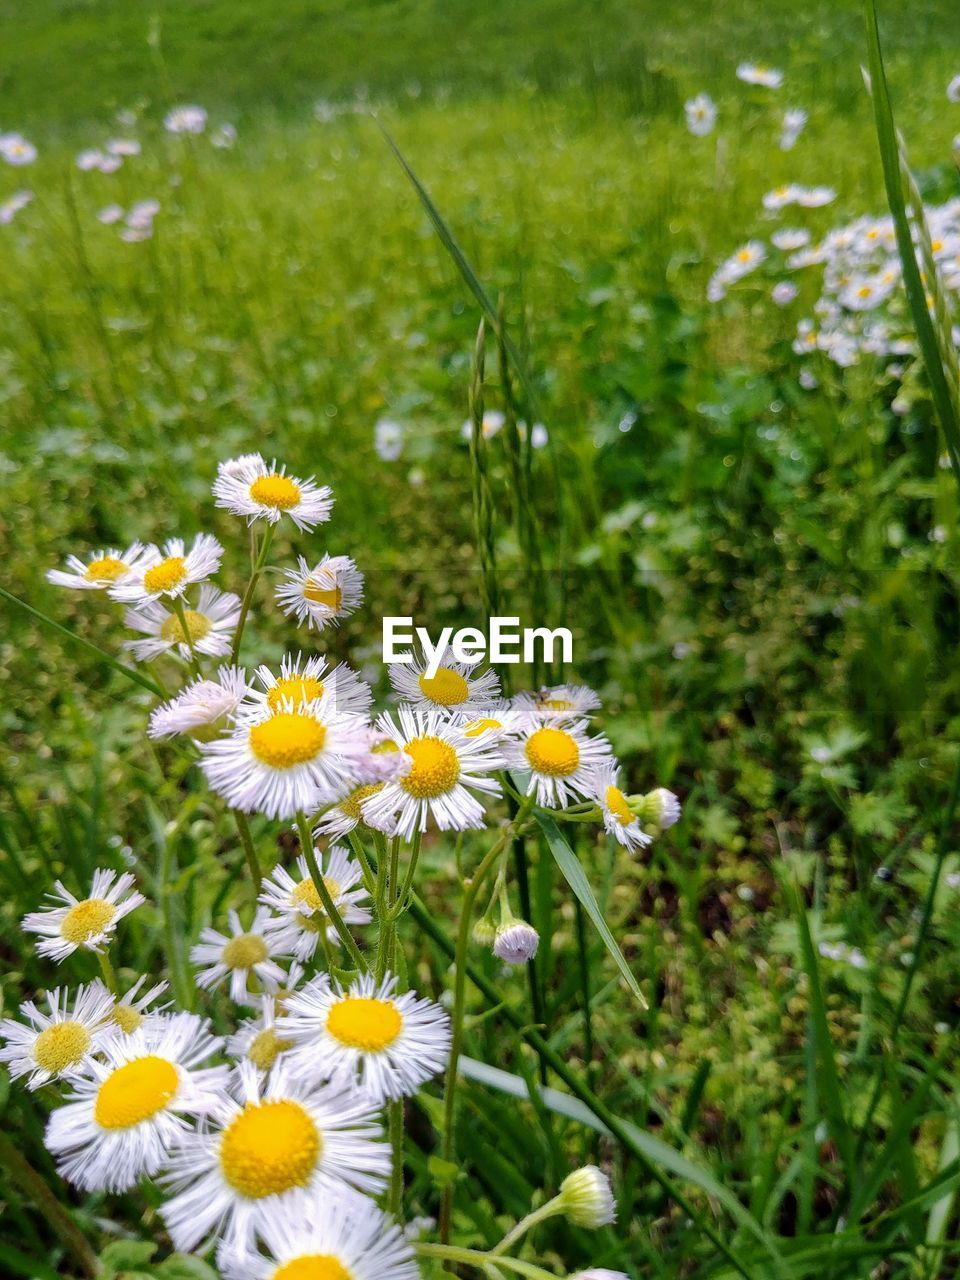 flowering plant, flower, plant, freshness, fragility, vulnerability, growth, beauty in nature, petal, inflorescence, flower head, nature, close-up, field, land, focus on foreground, day, no people, grass, yellow, outdoors, pollen